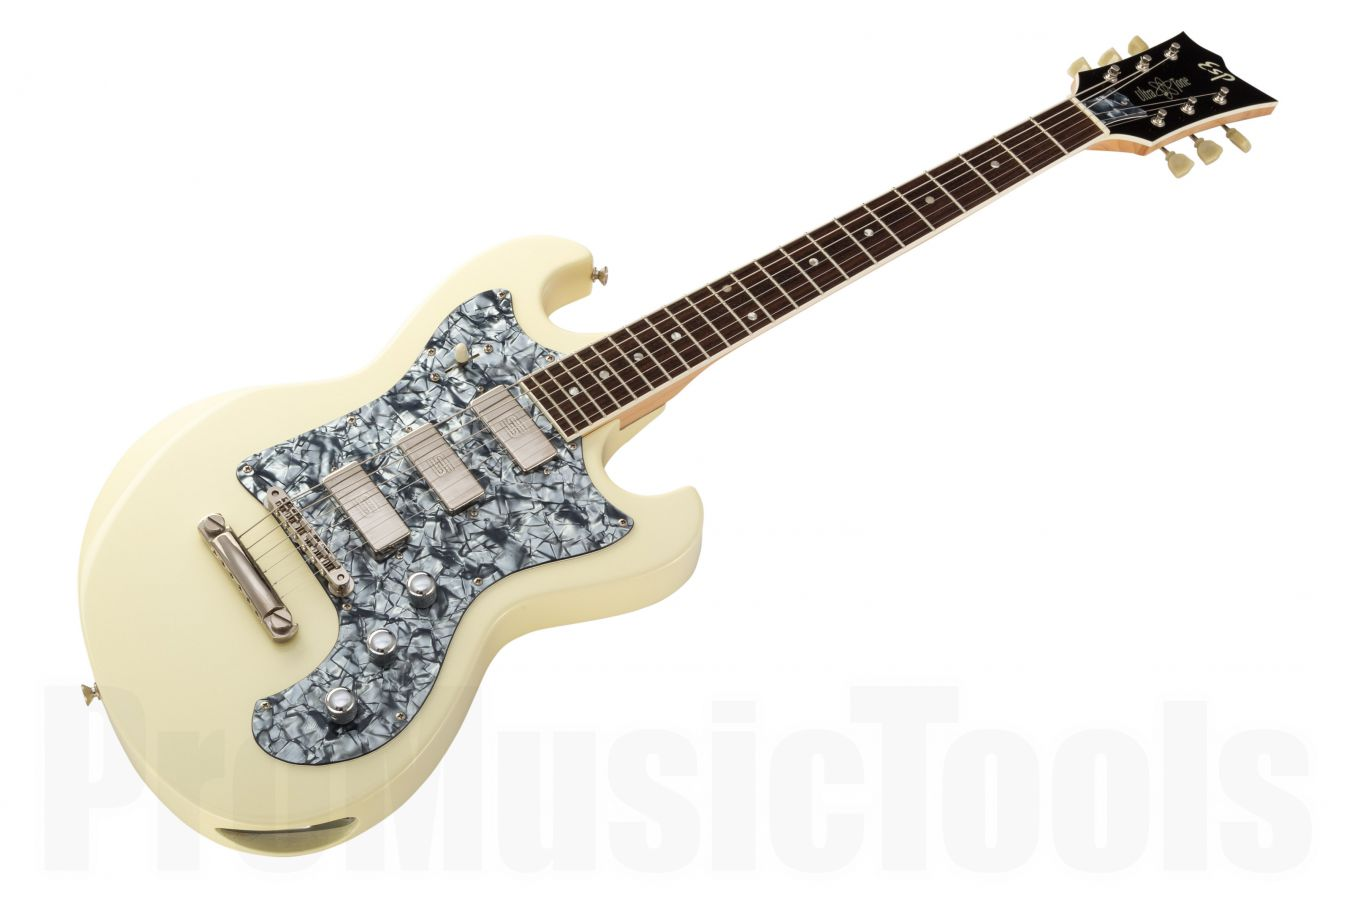 ESP Ultratone Custom Shop VW - Vintage White